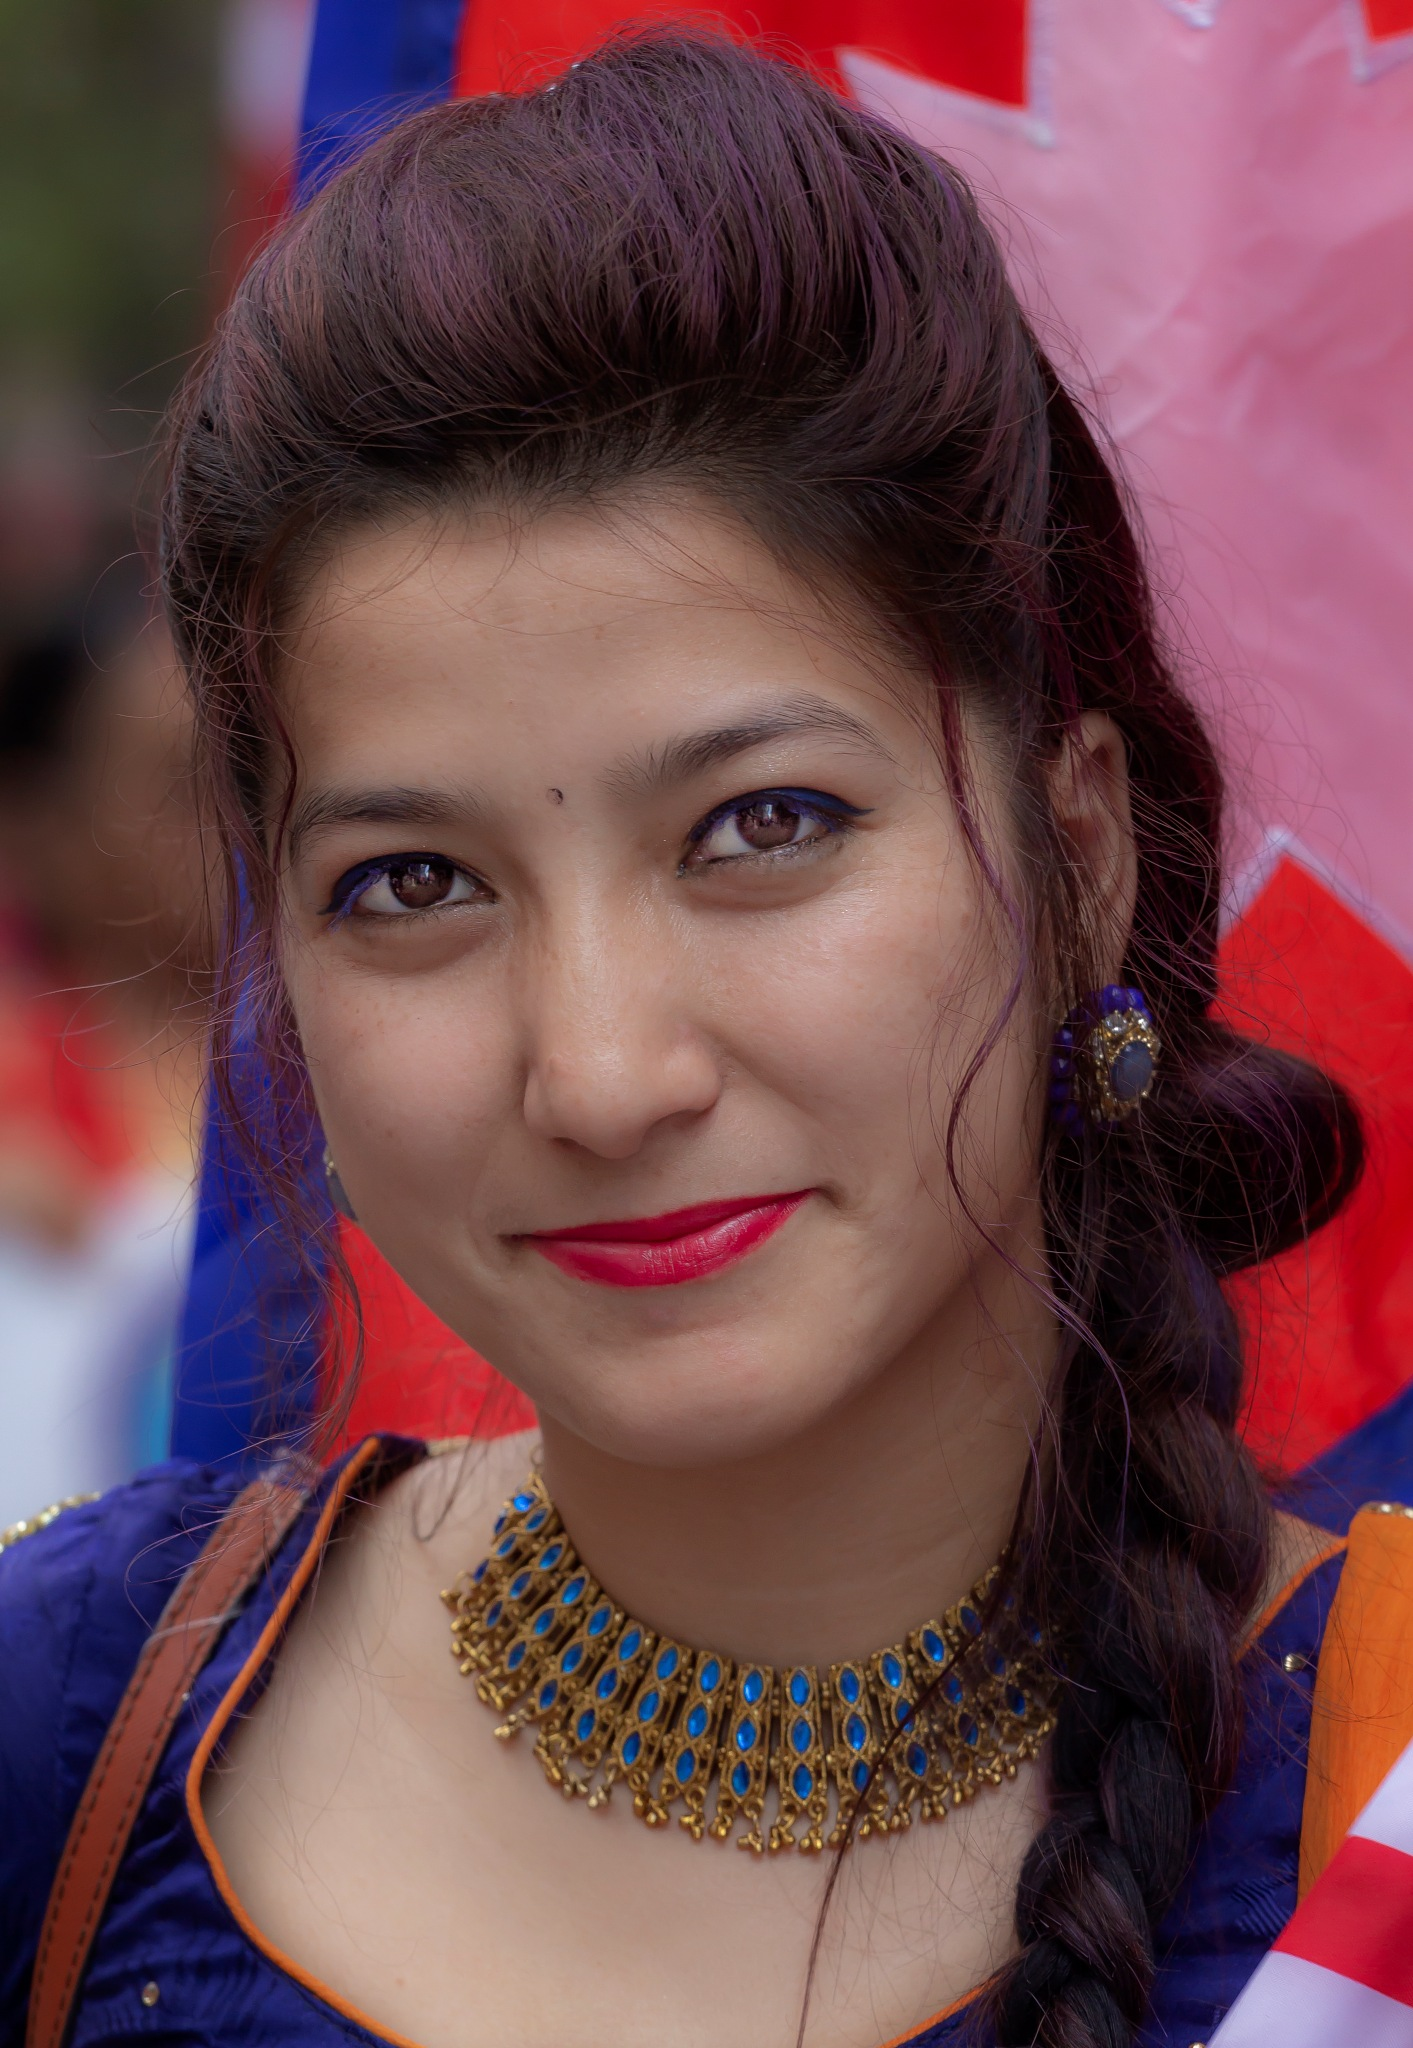 Nepal Day NYC 5_20_18 Woman in Tradtional Dress by robertullmann